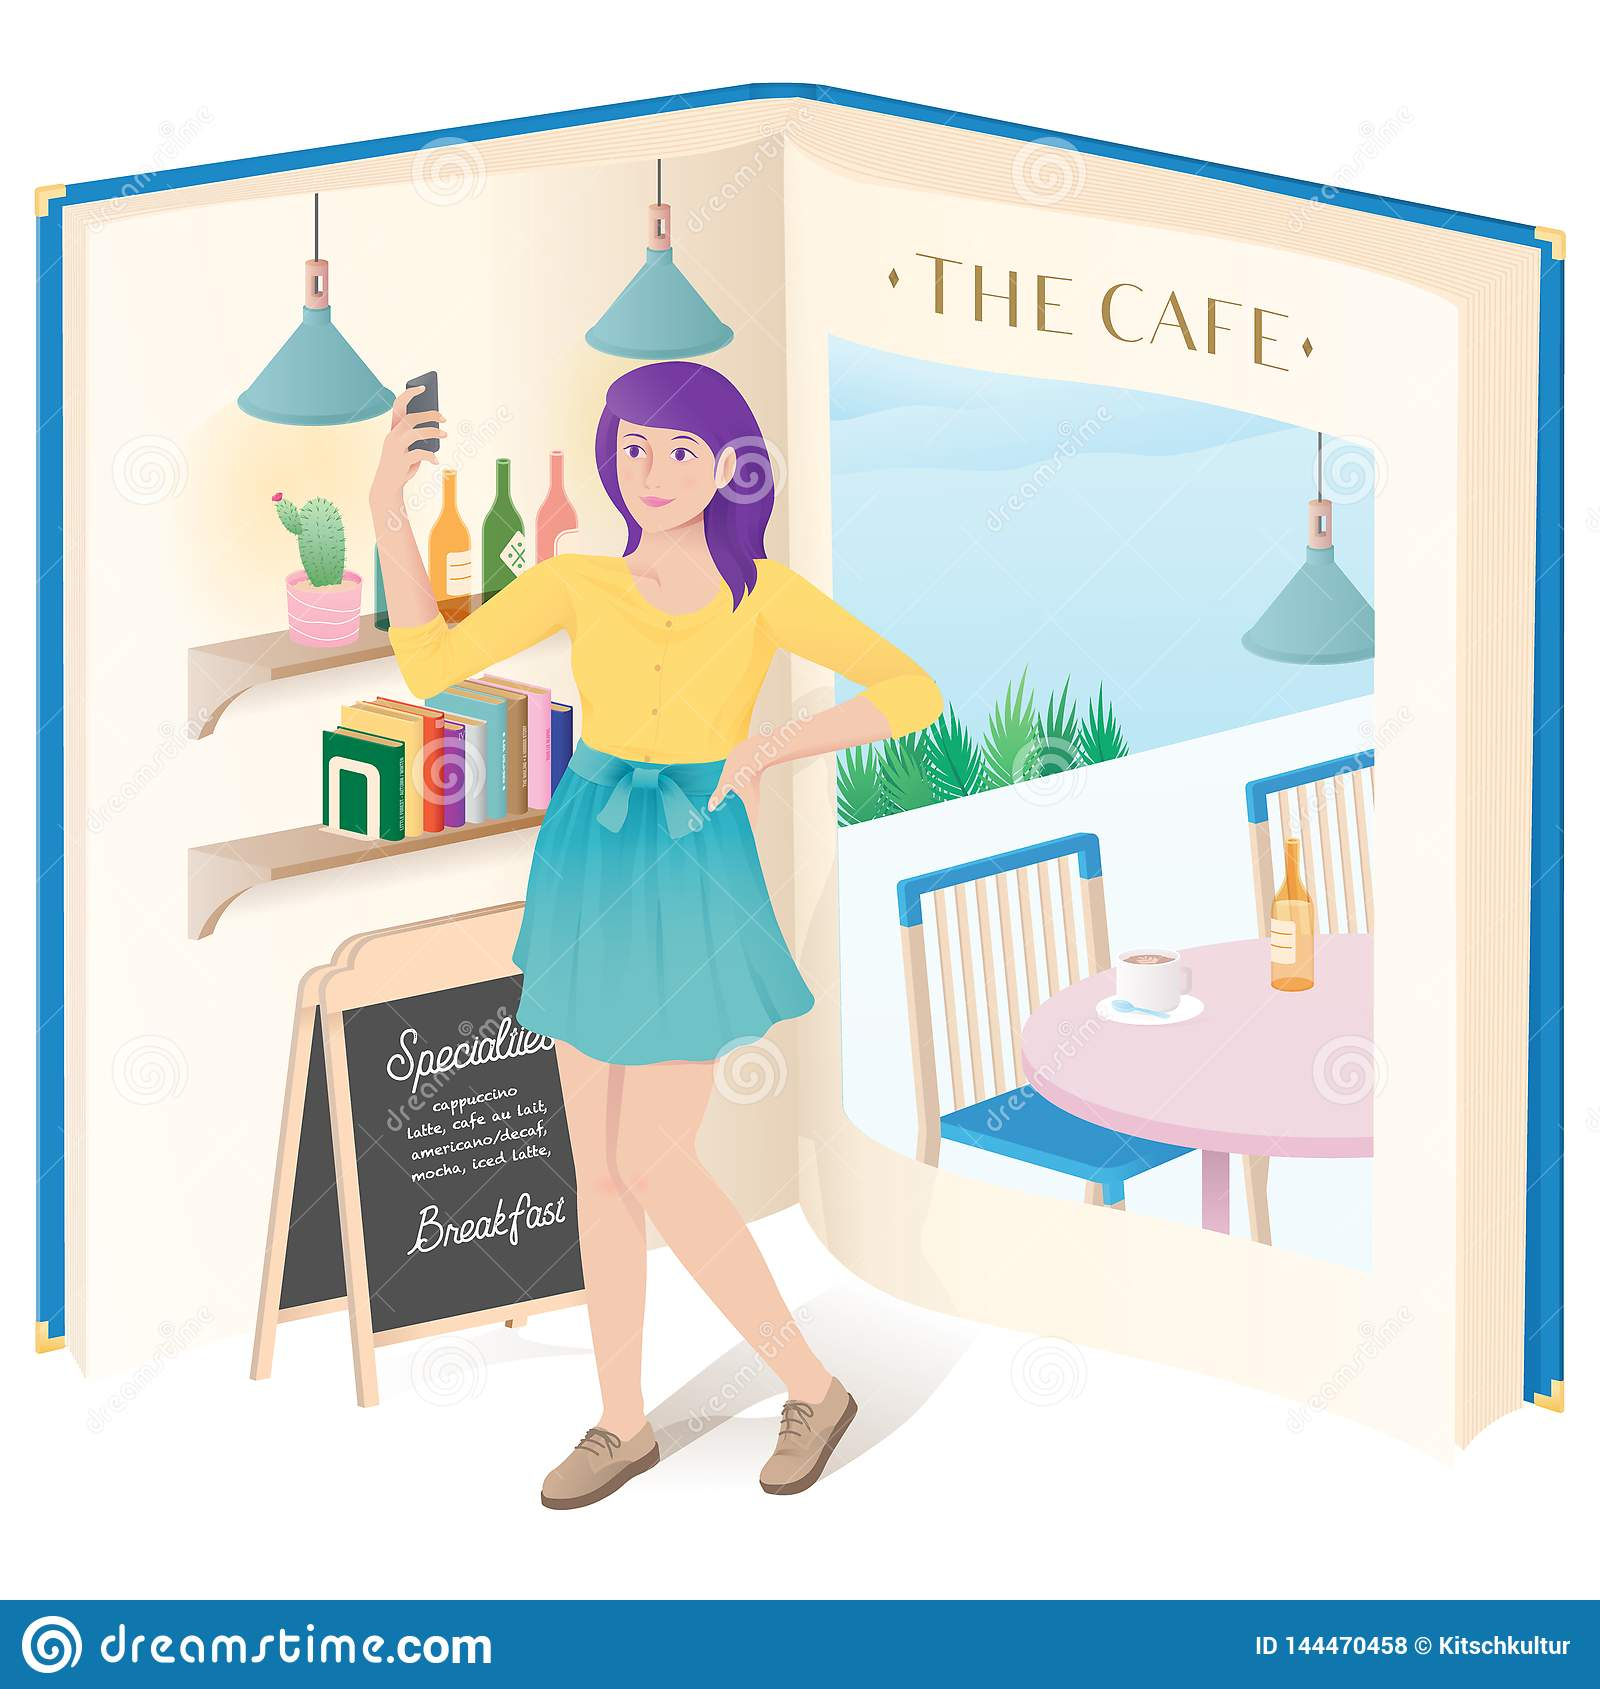 A girl doing selfie in the cafe